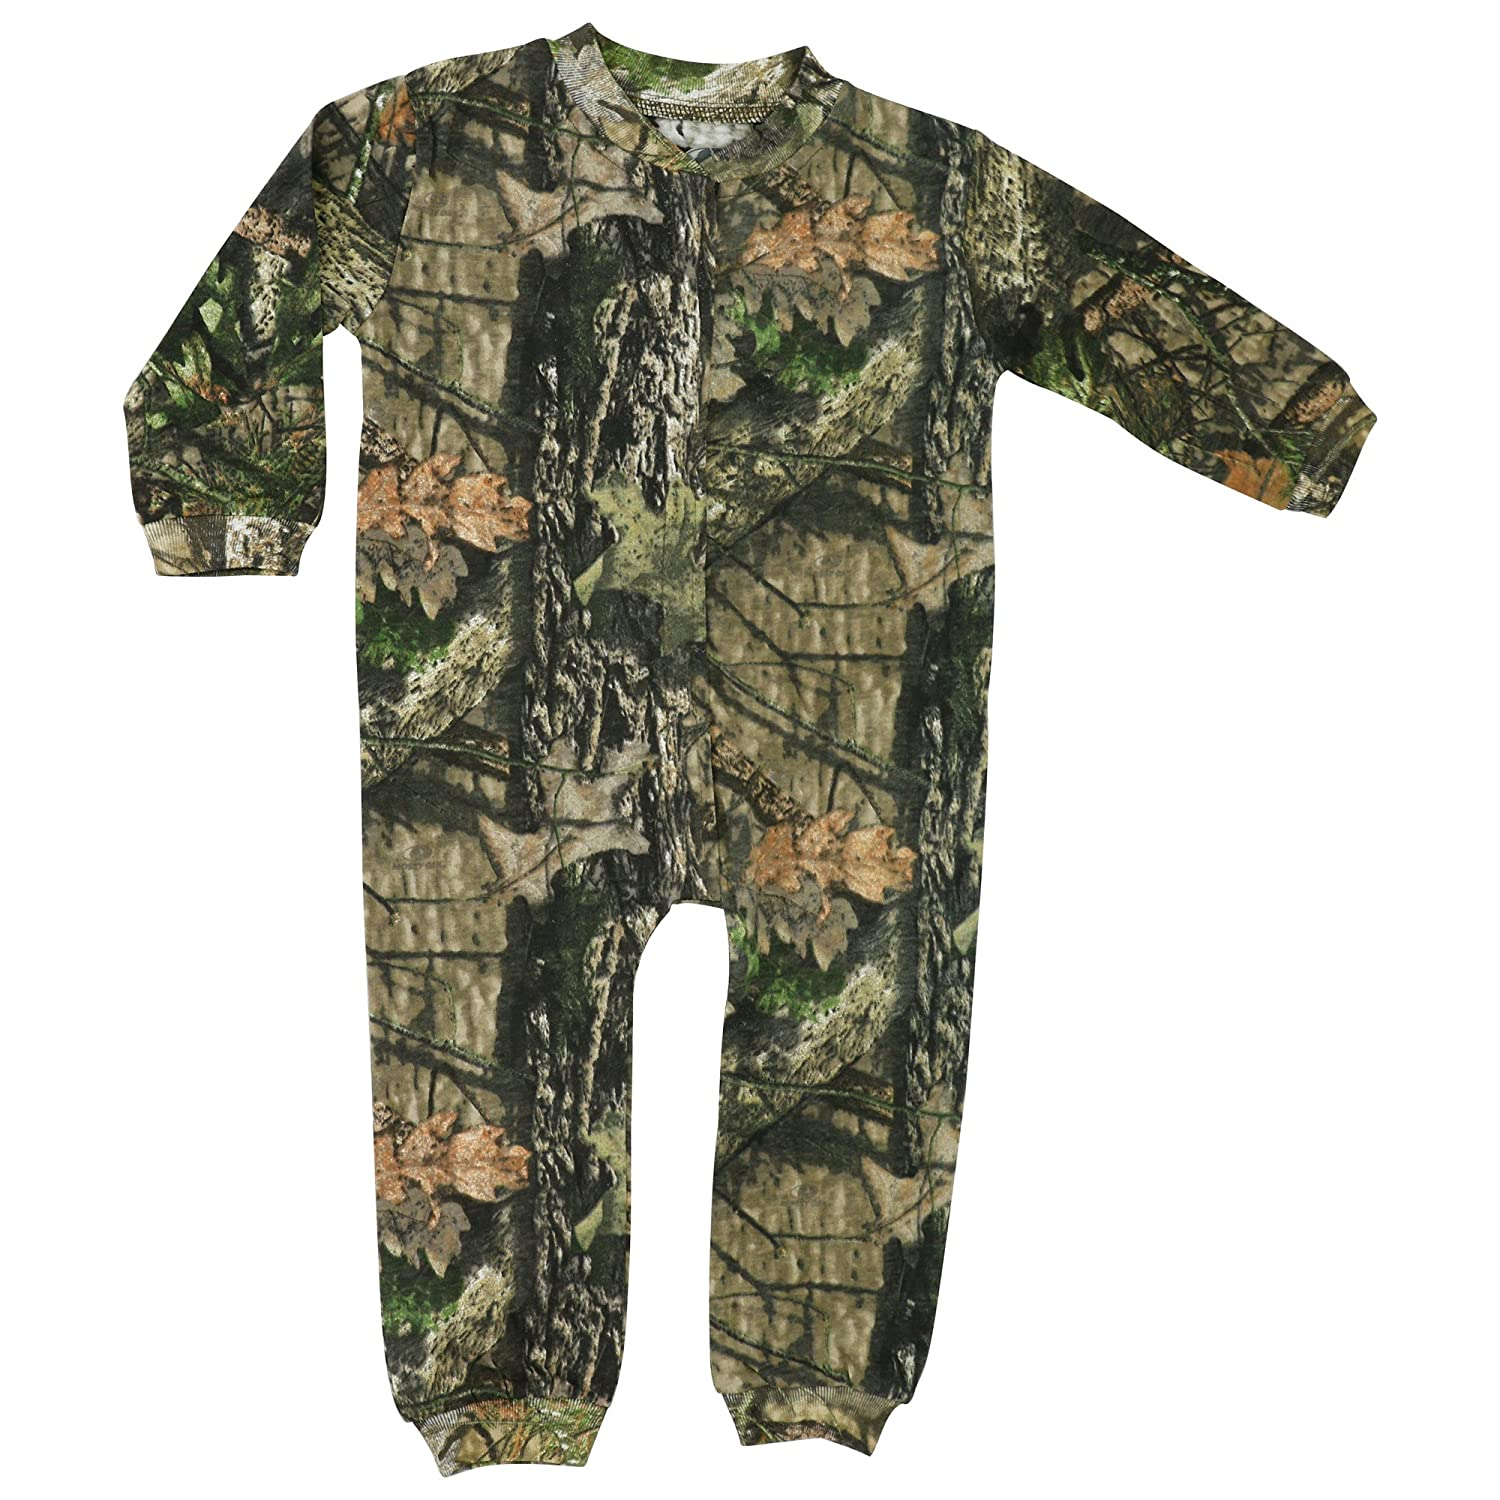 Mossy Oak Camo Baby Union Suit in Break-up Country